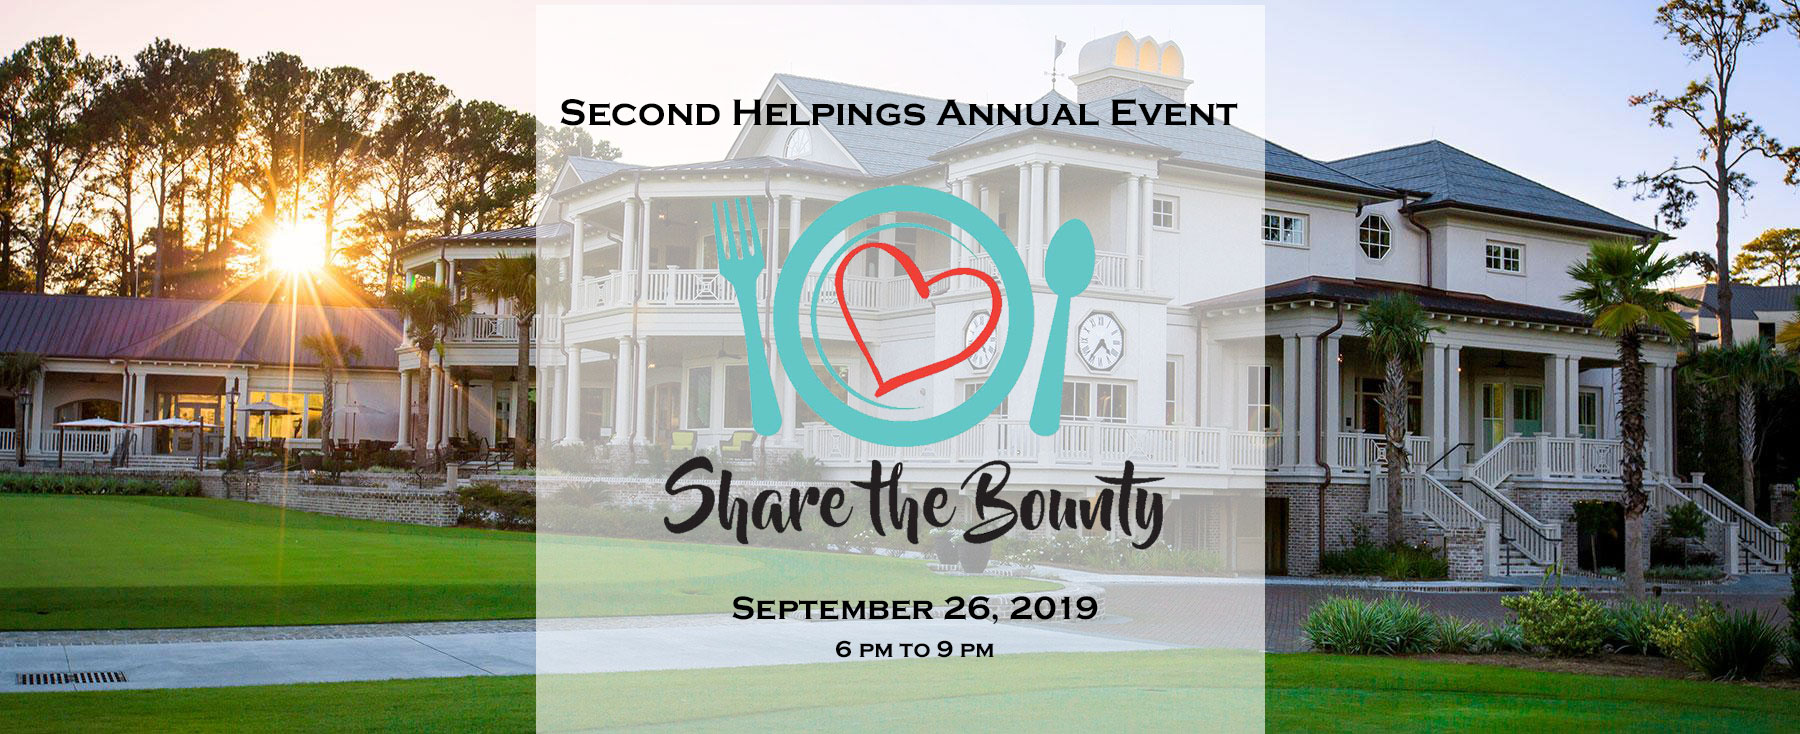 SHARE THE BOUNTY annual event presents Founder Awards